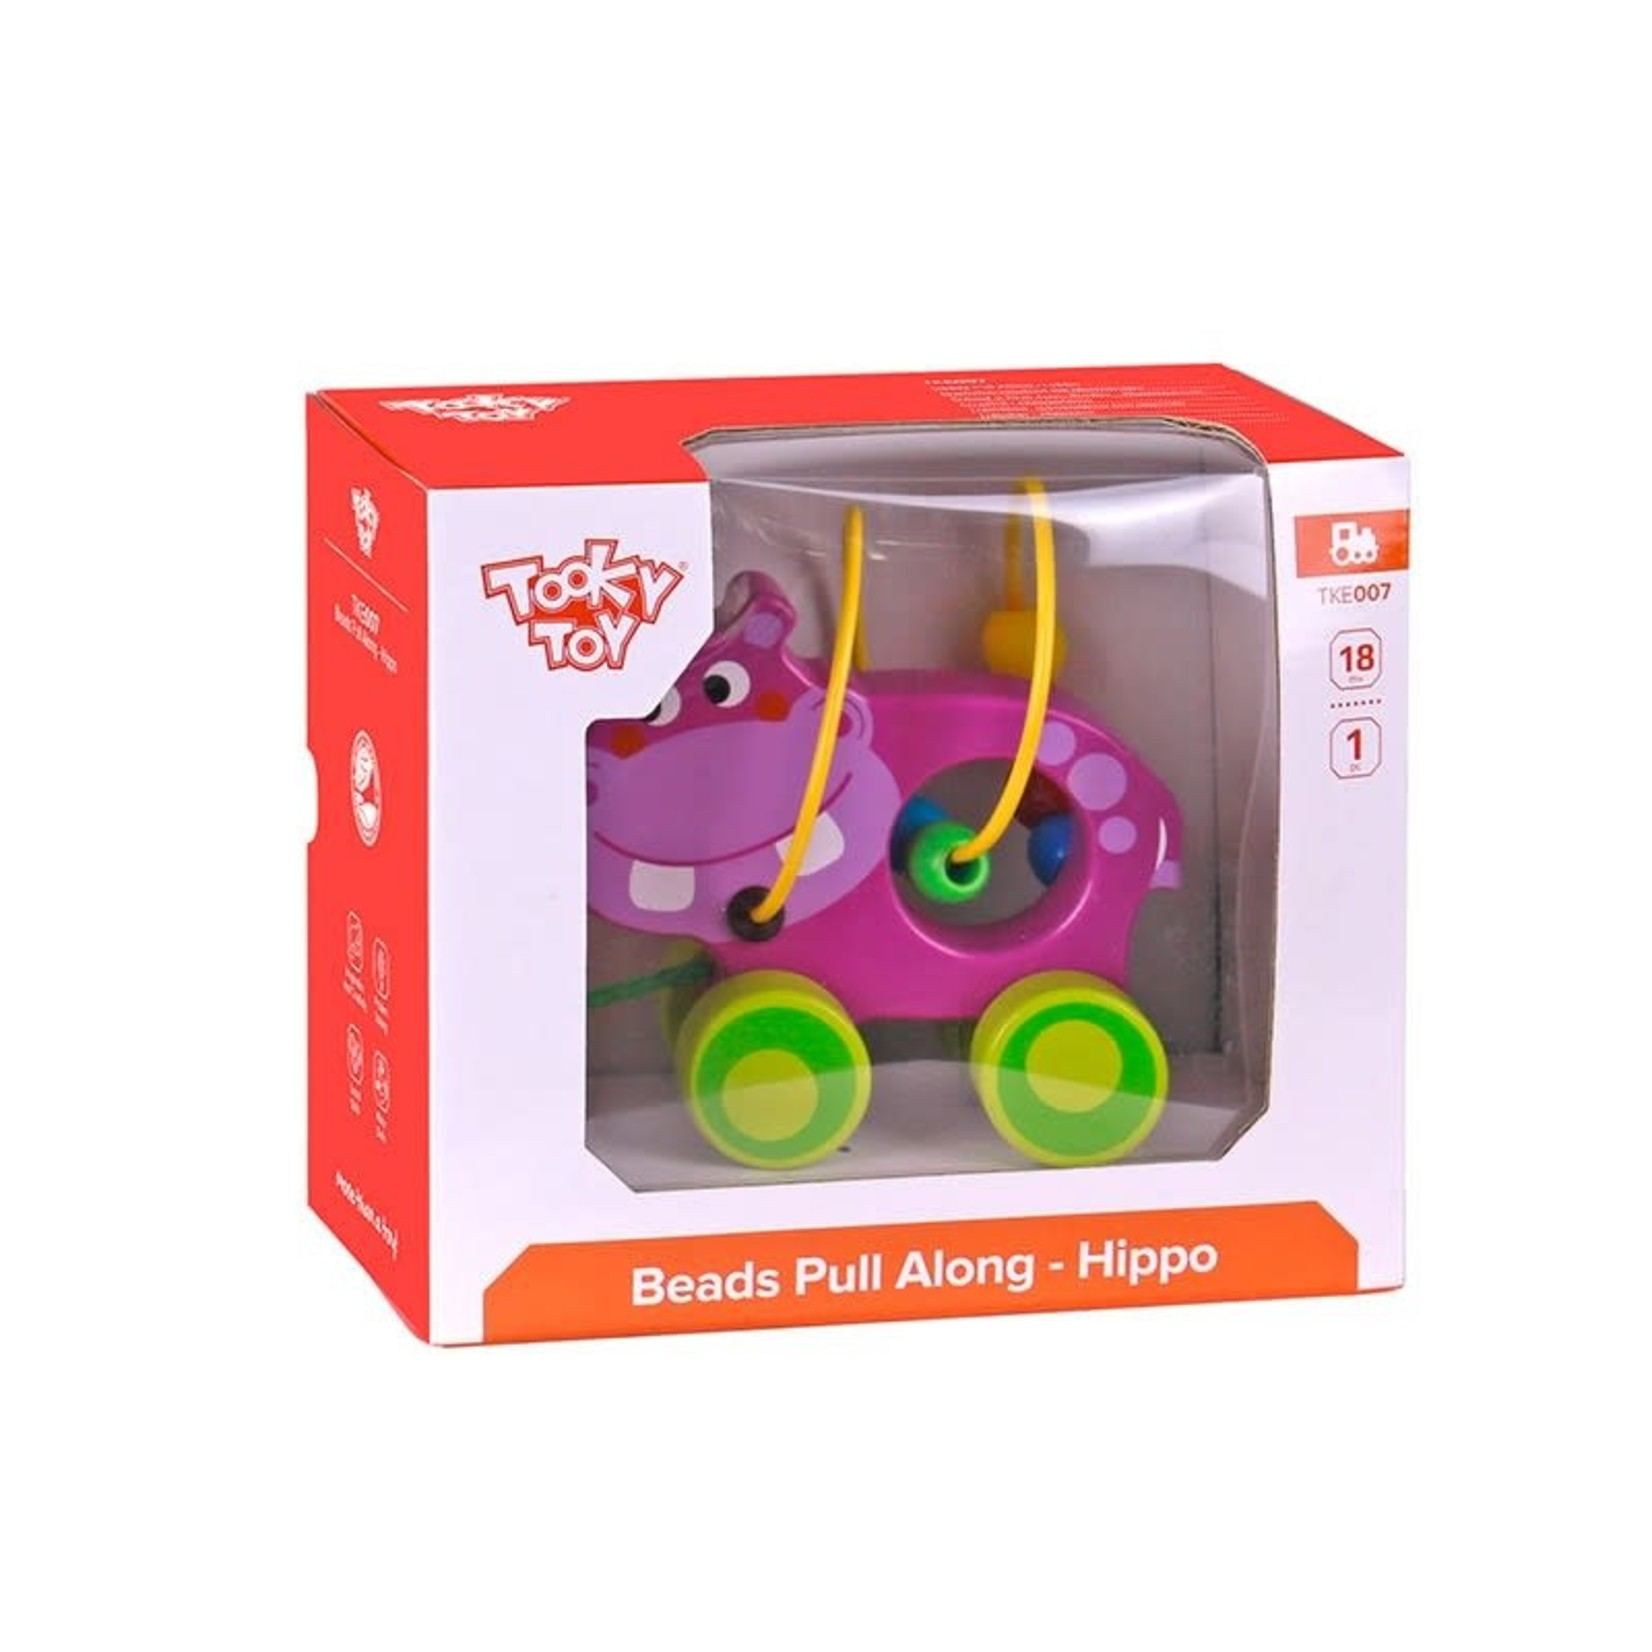 Tooky Toy Beads Pull Along - Hippo